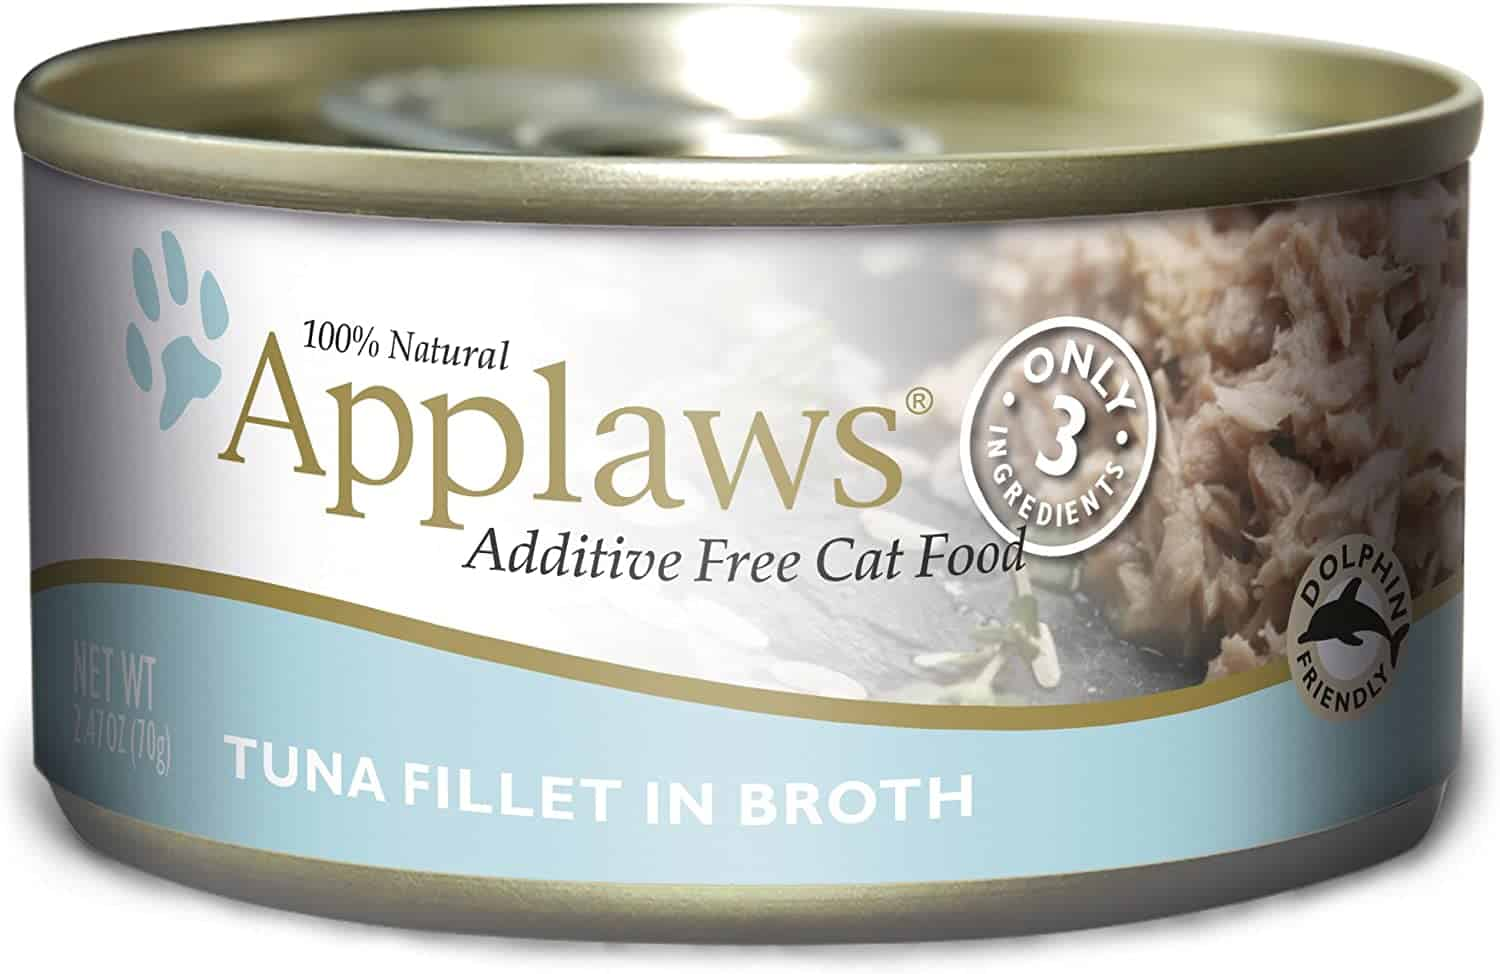 2020 Applaws Cat Food Reviews: Naturally Nutritious Cat Food 4